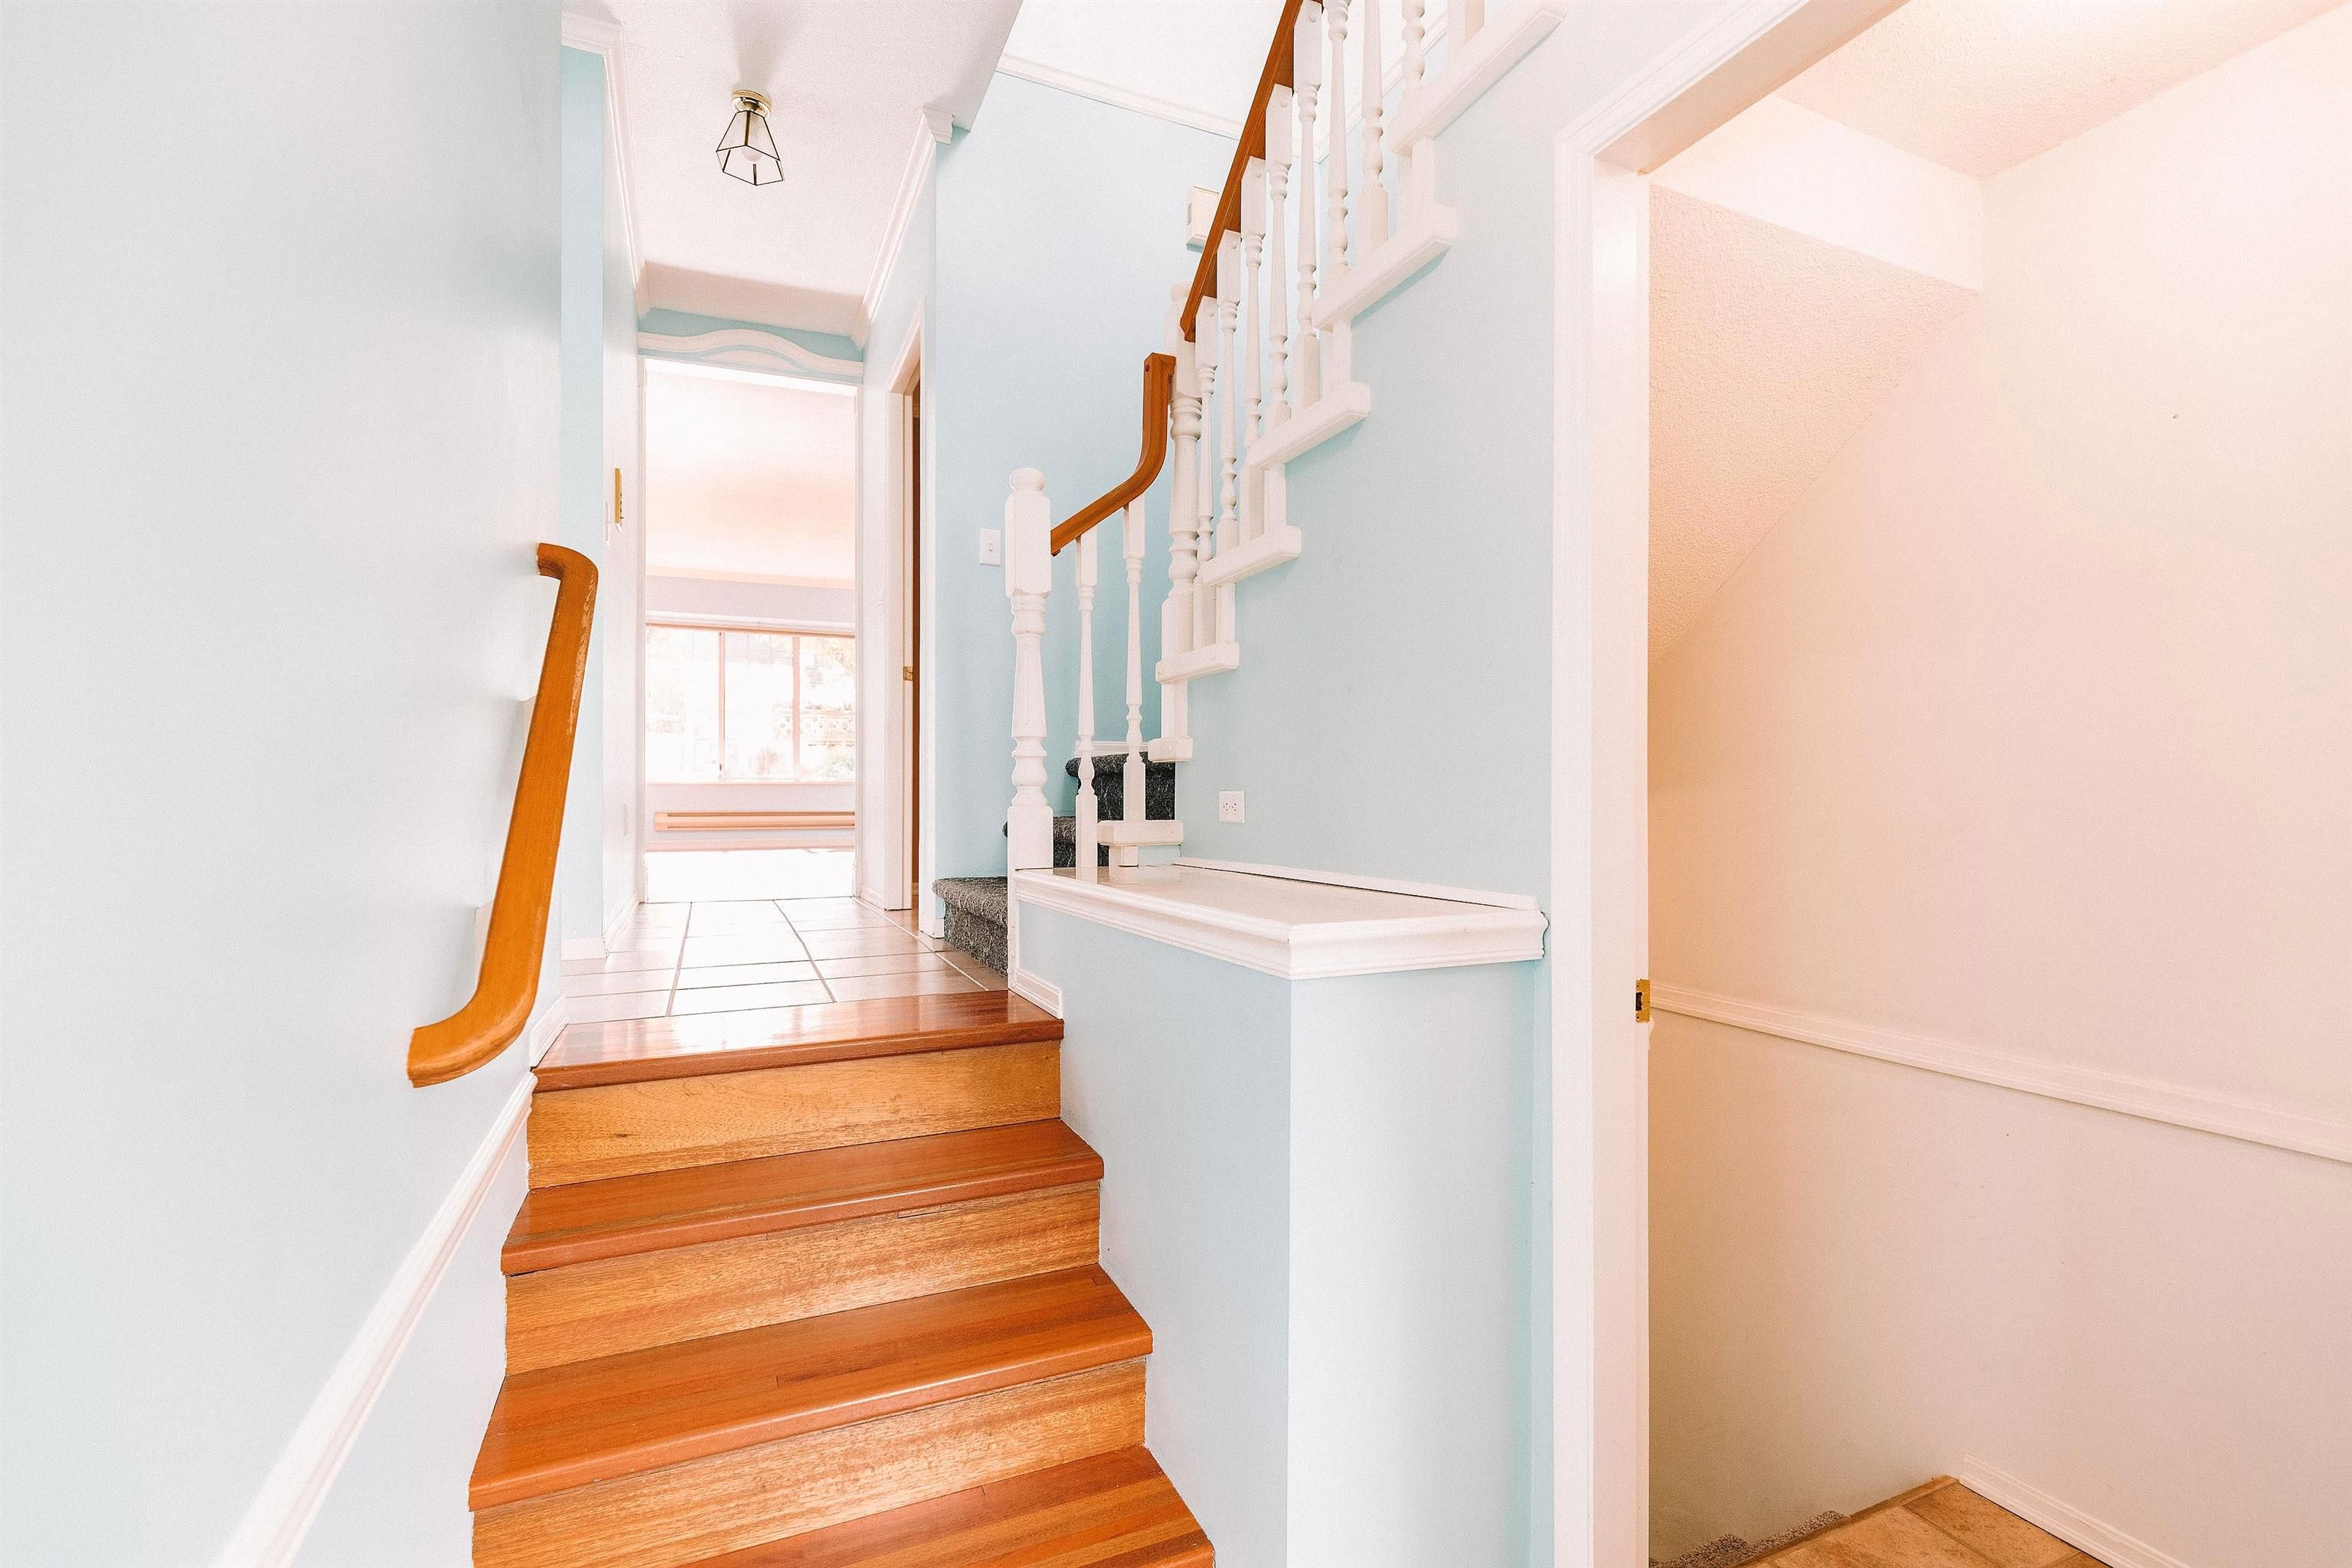 """Main Photo: 64 6503 CHAMBORD Place in Vancouver: Killarney VE Townhouse for sale in """"La Frontenac"""" (Vancouver East)  : MLS®# R2622976"""